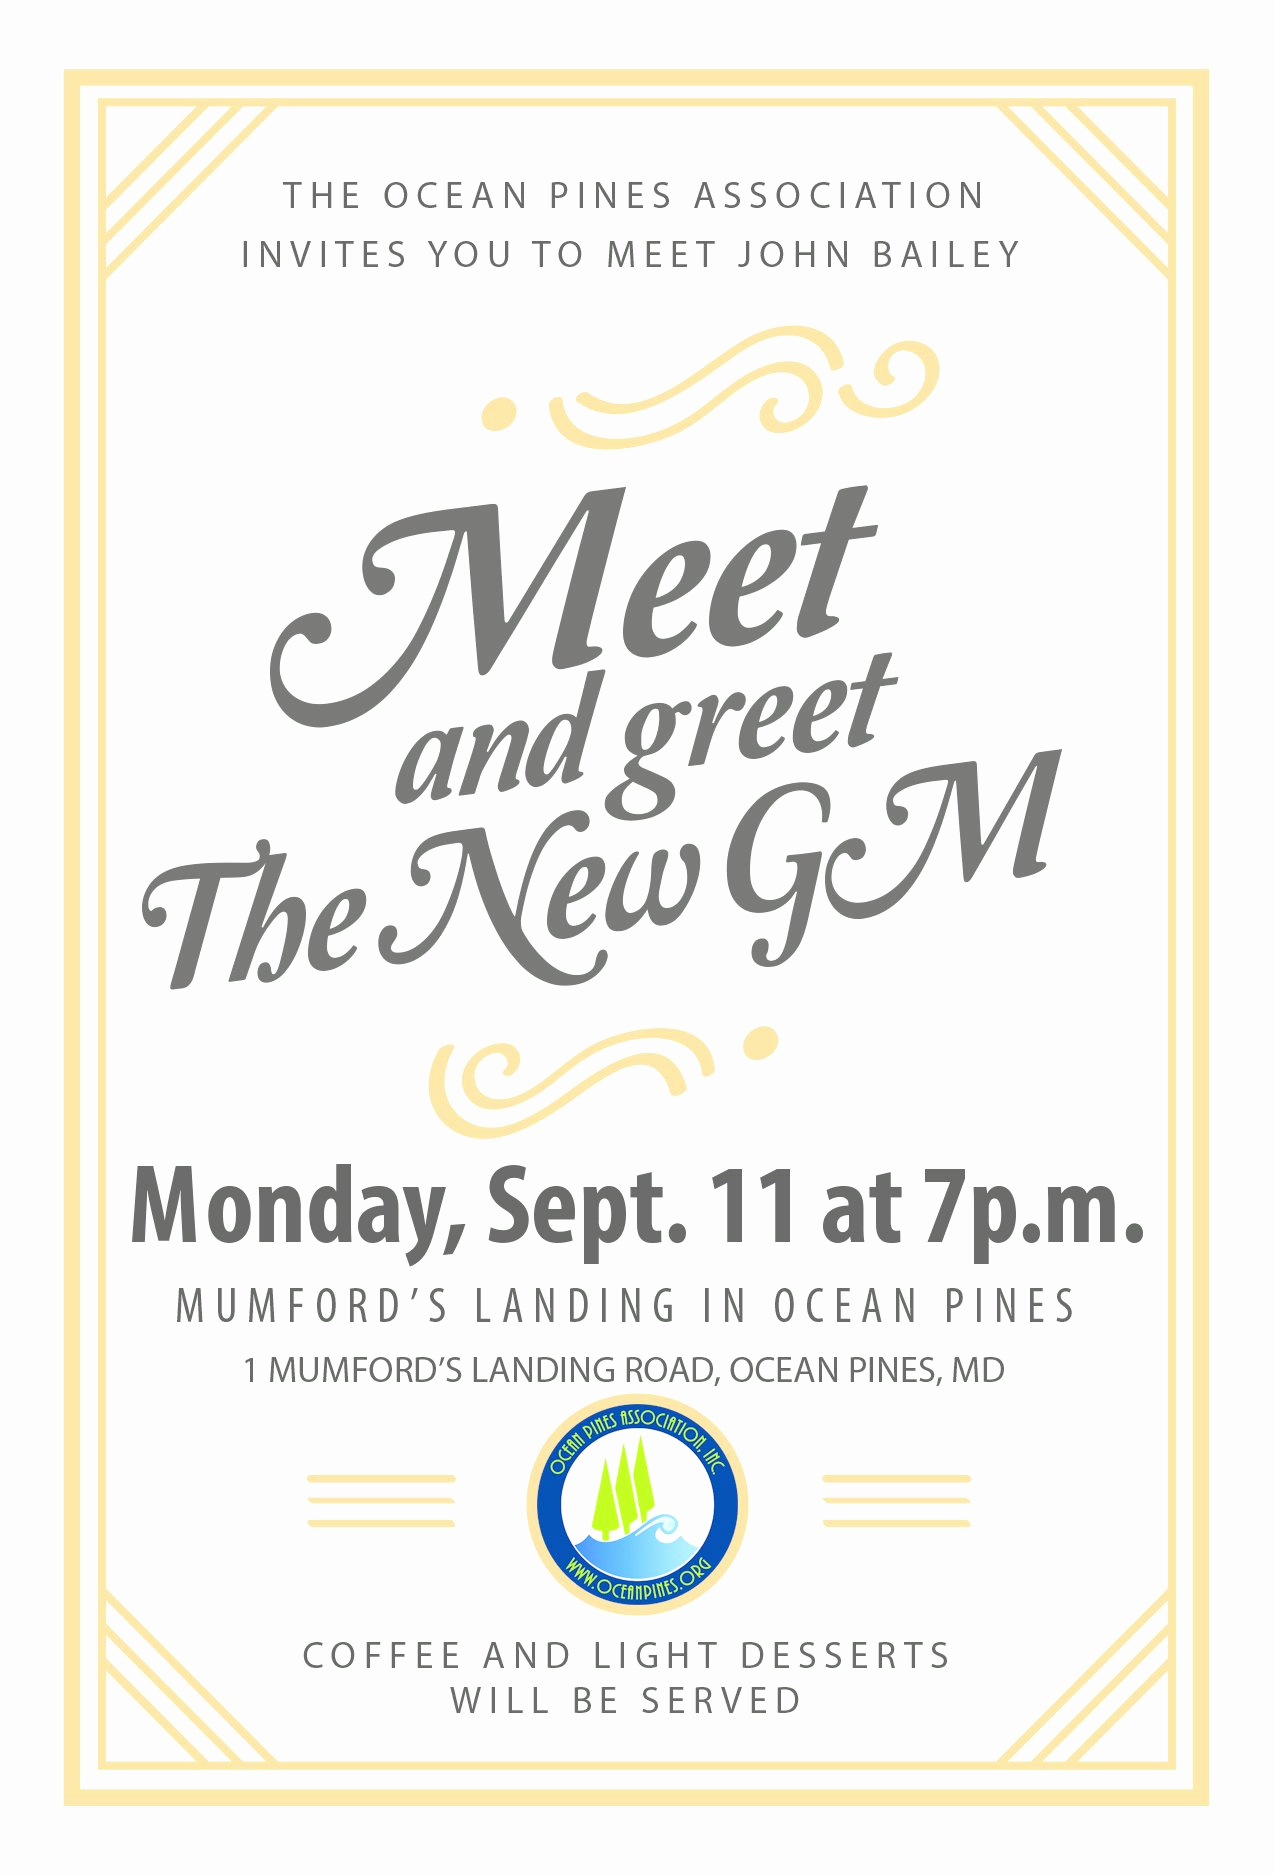 Meet and Greet Invitation Elegant Meet & Greet New Gm